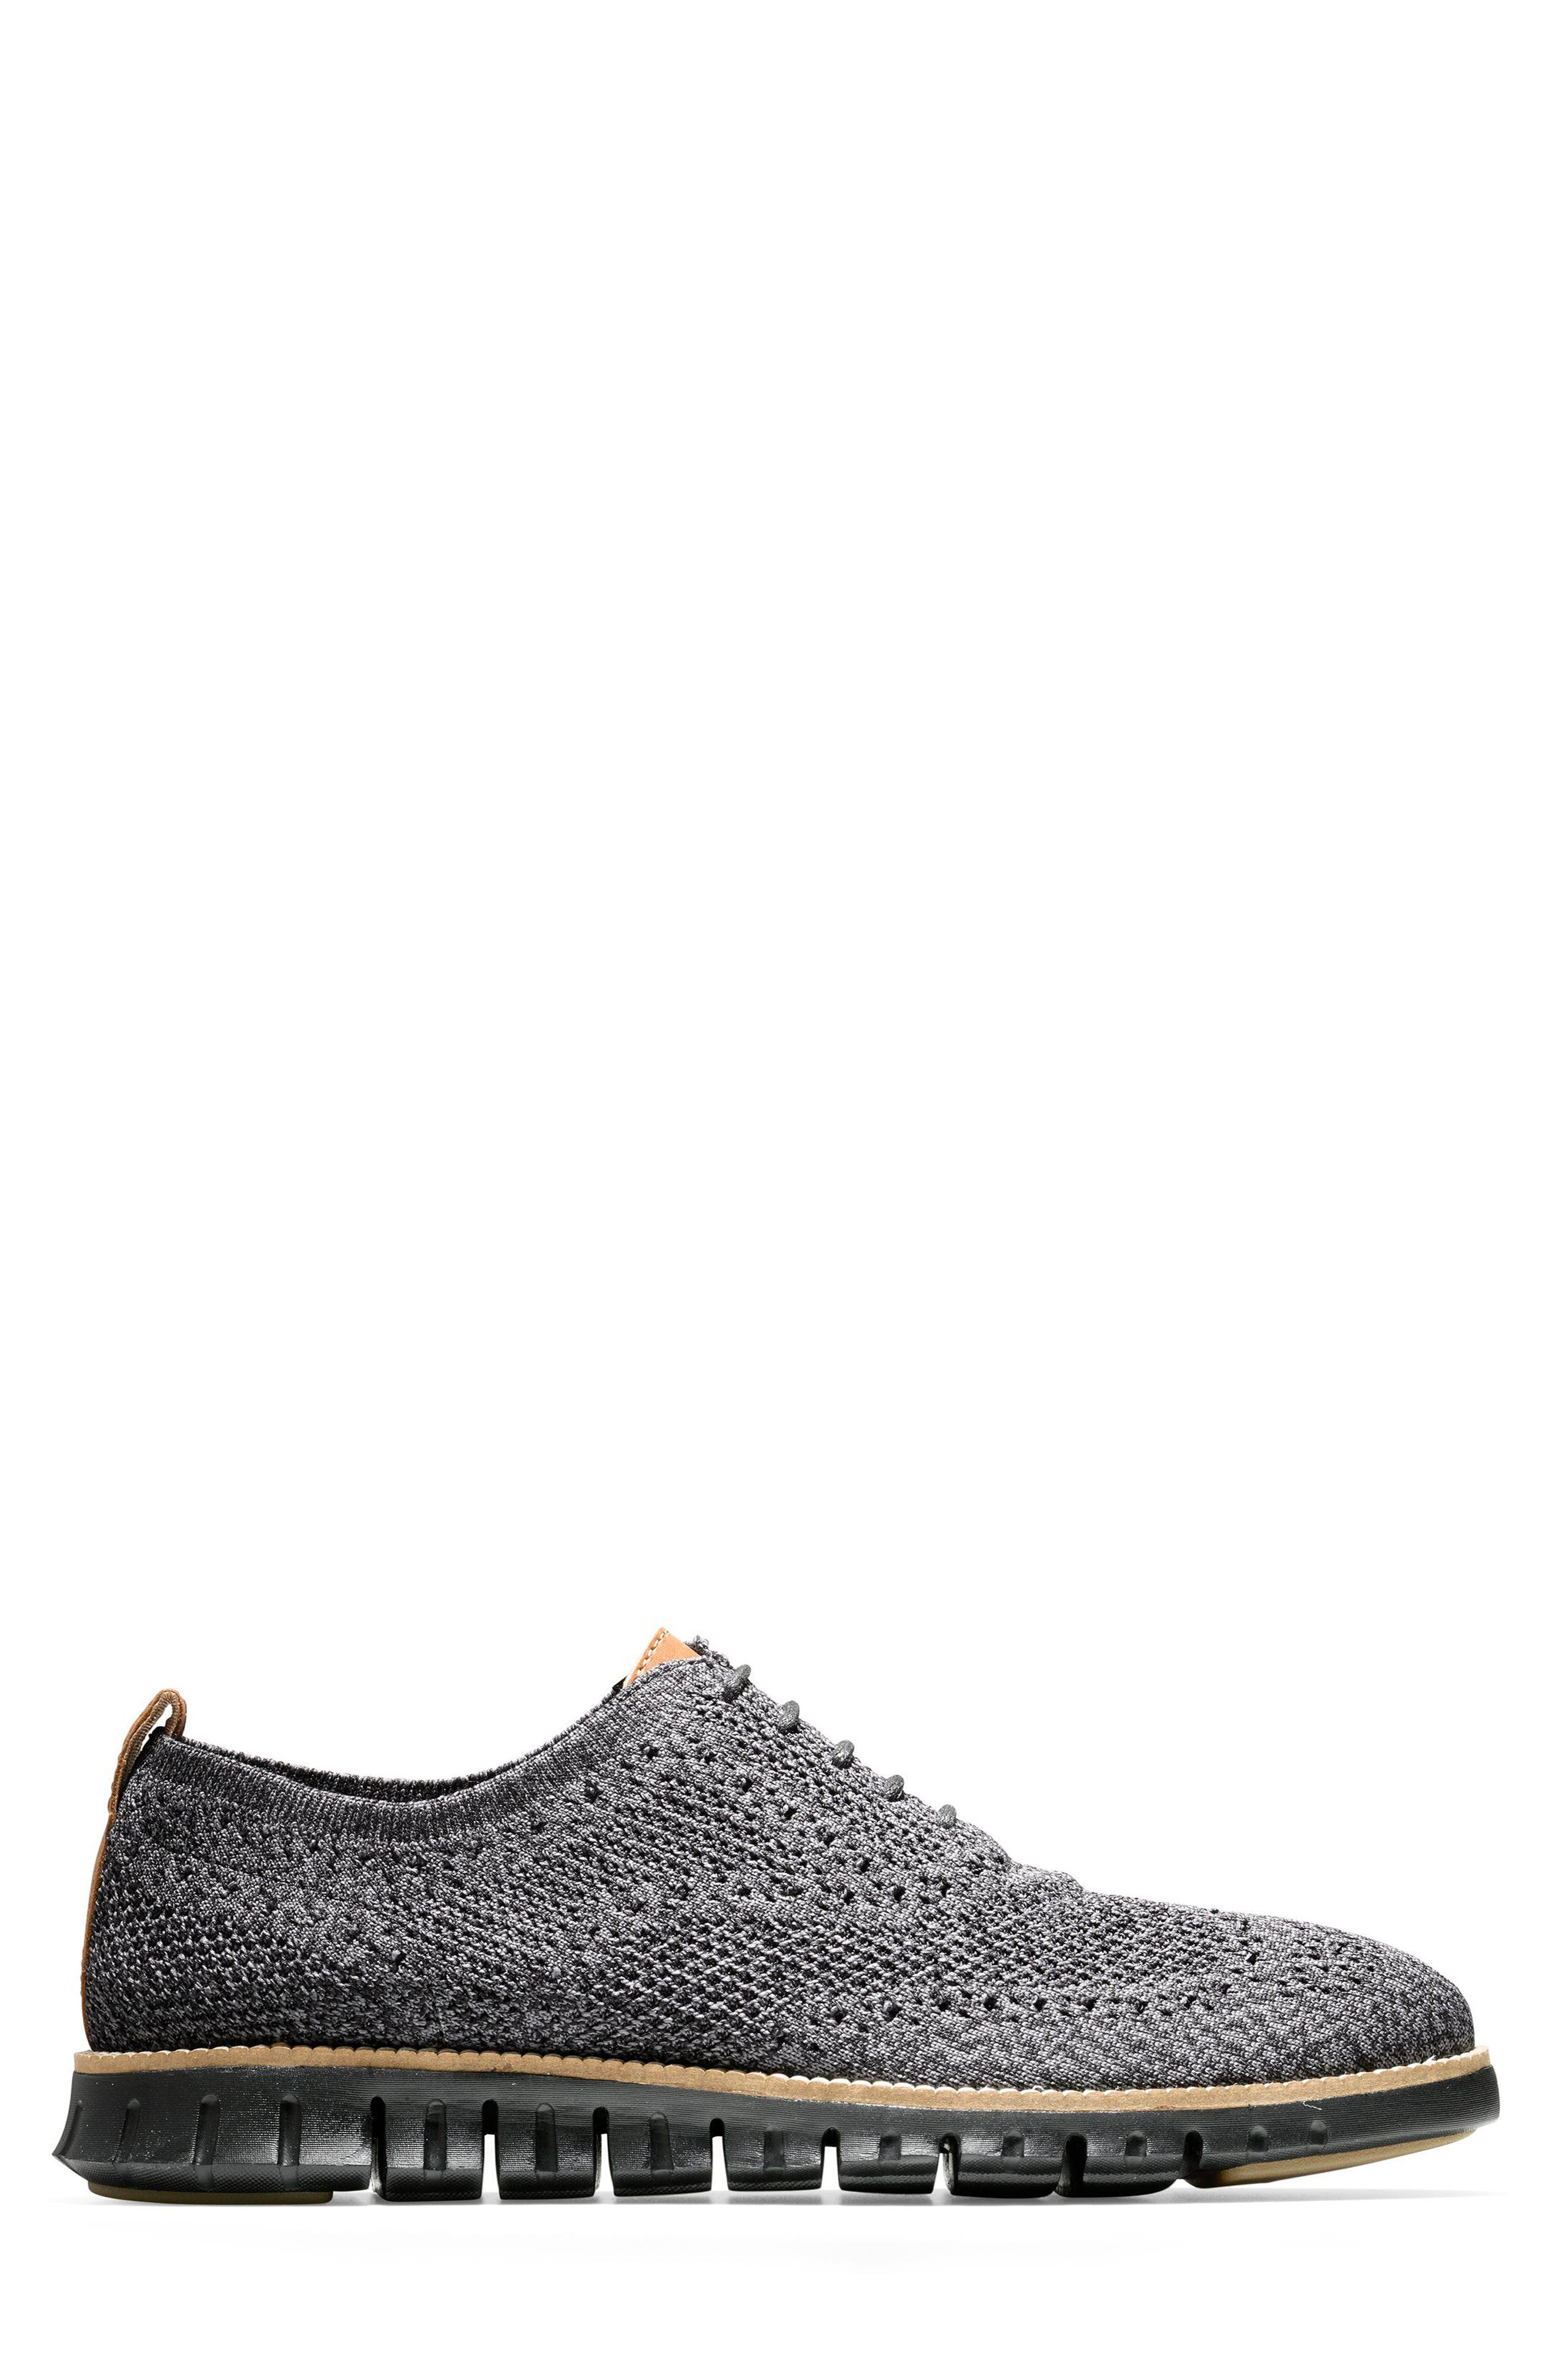 ZeroGrand Stitchlite Oxford,                             Alternate thumbnail 3, color,                             Black/ Magnet